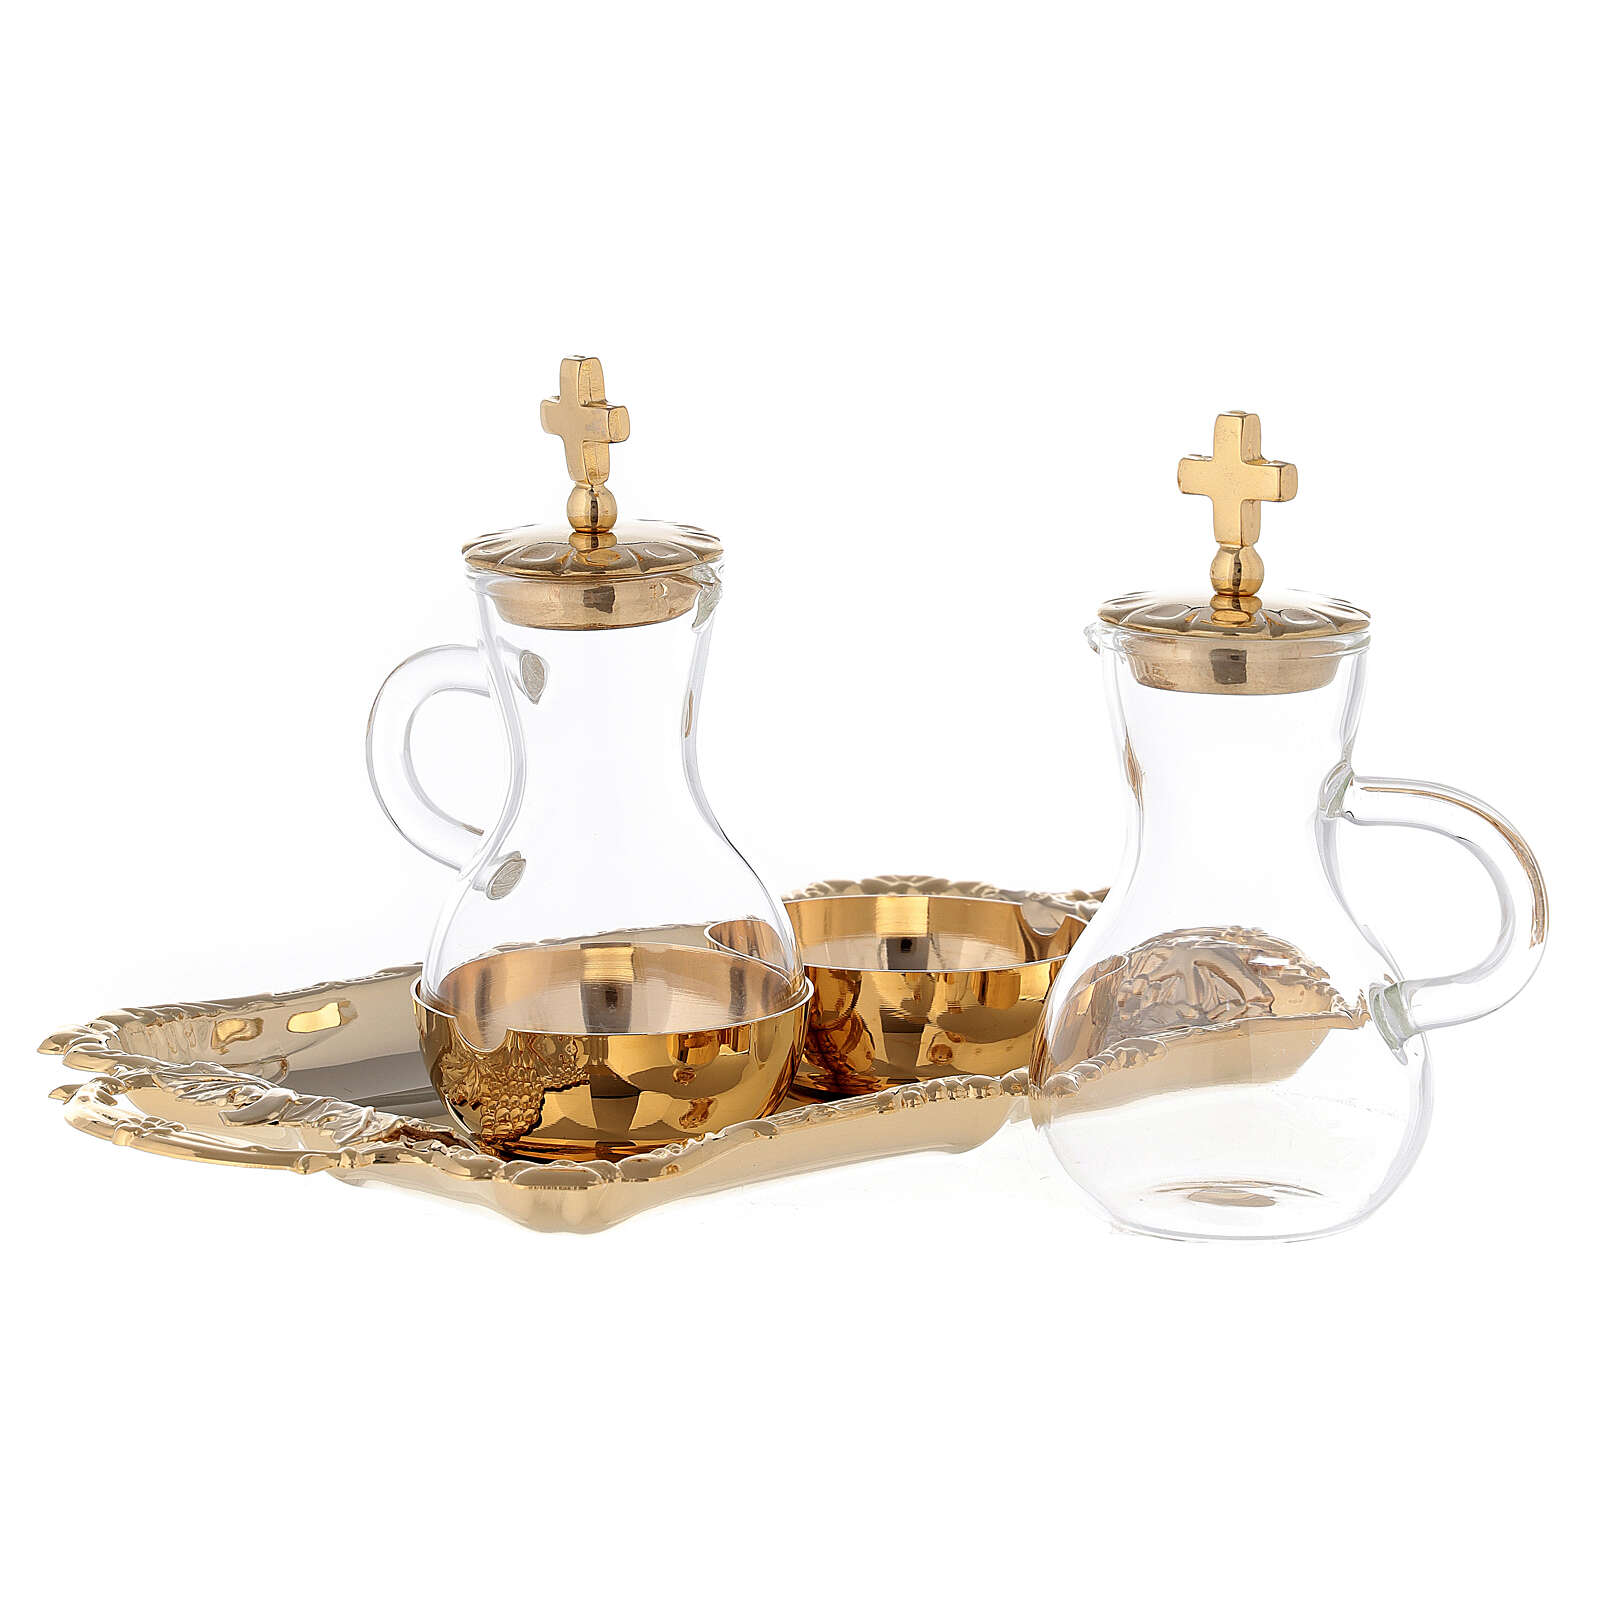 Service for water and wine golden brass 24k model Parma 4